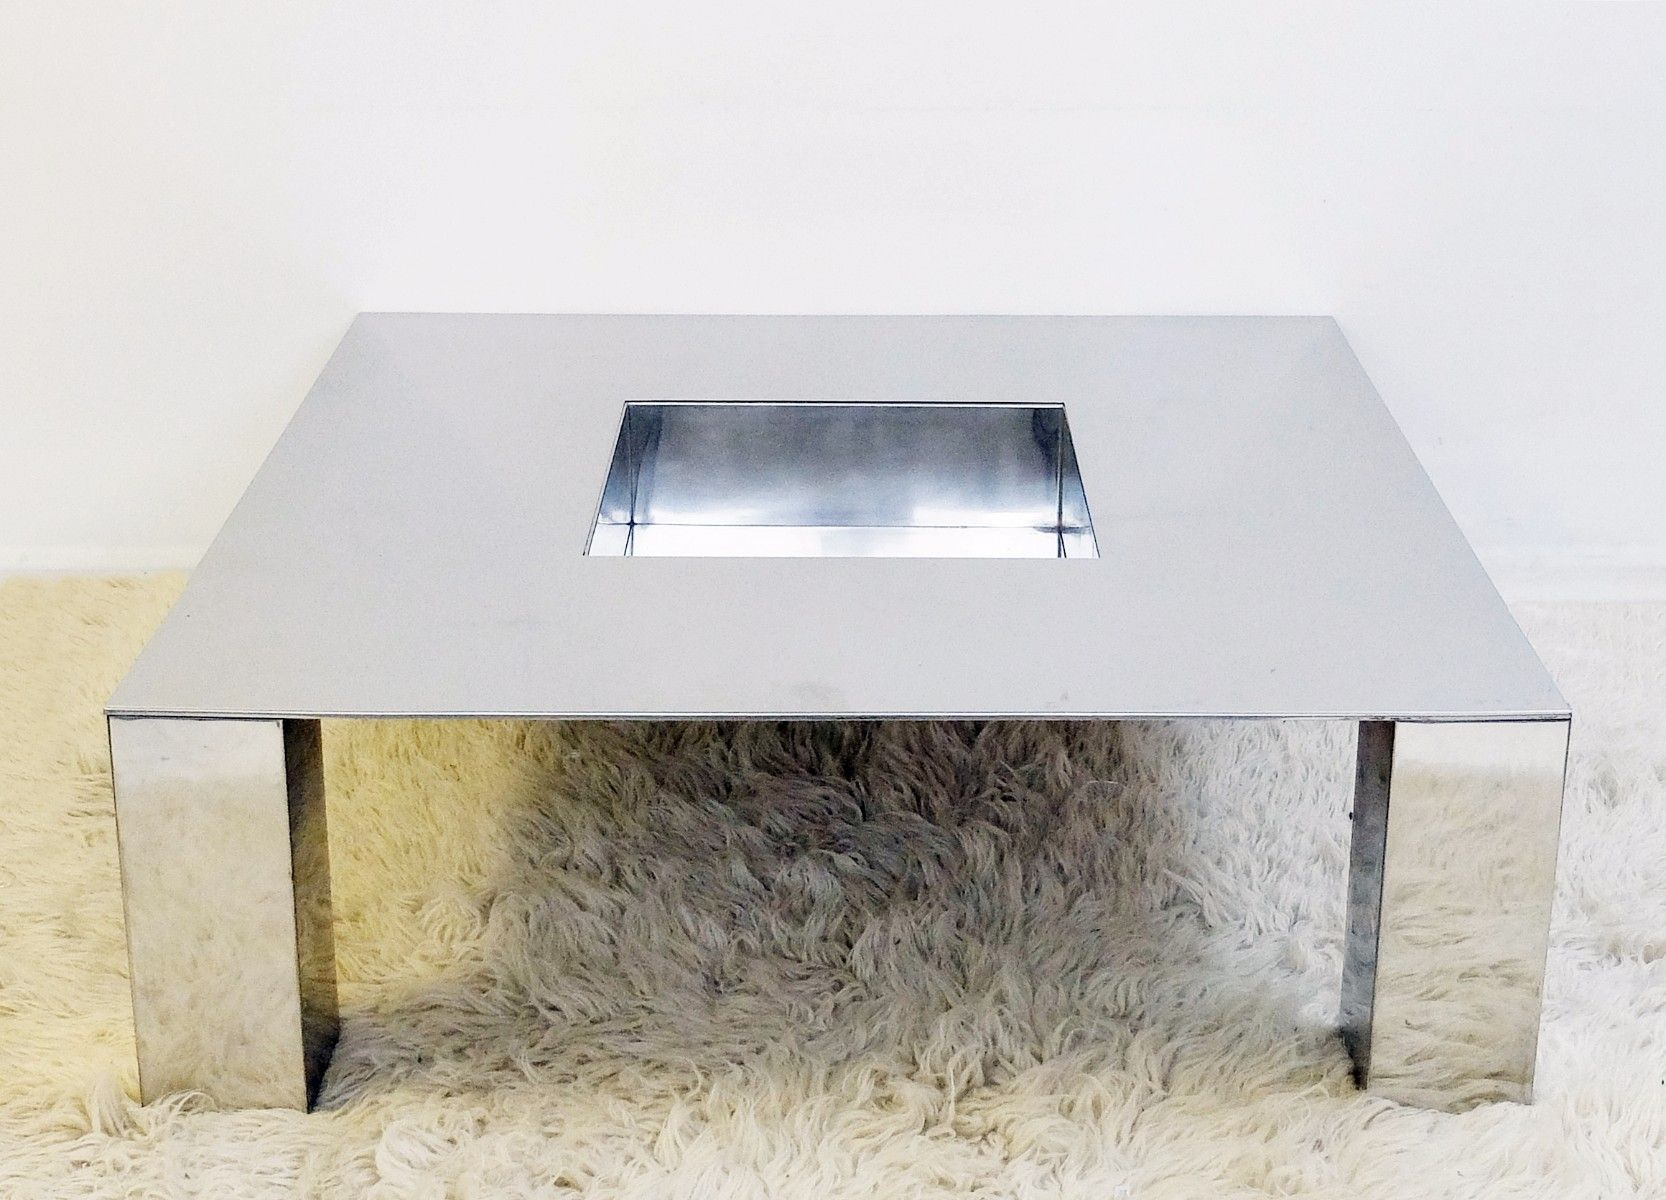 Vintage Tebe Chrome Coffee Table By Giovanni Offredi S For Sale - Concrete and chrome coffee table